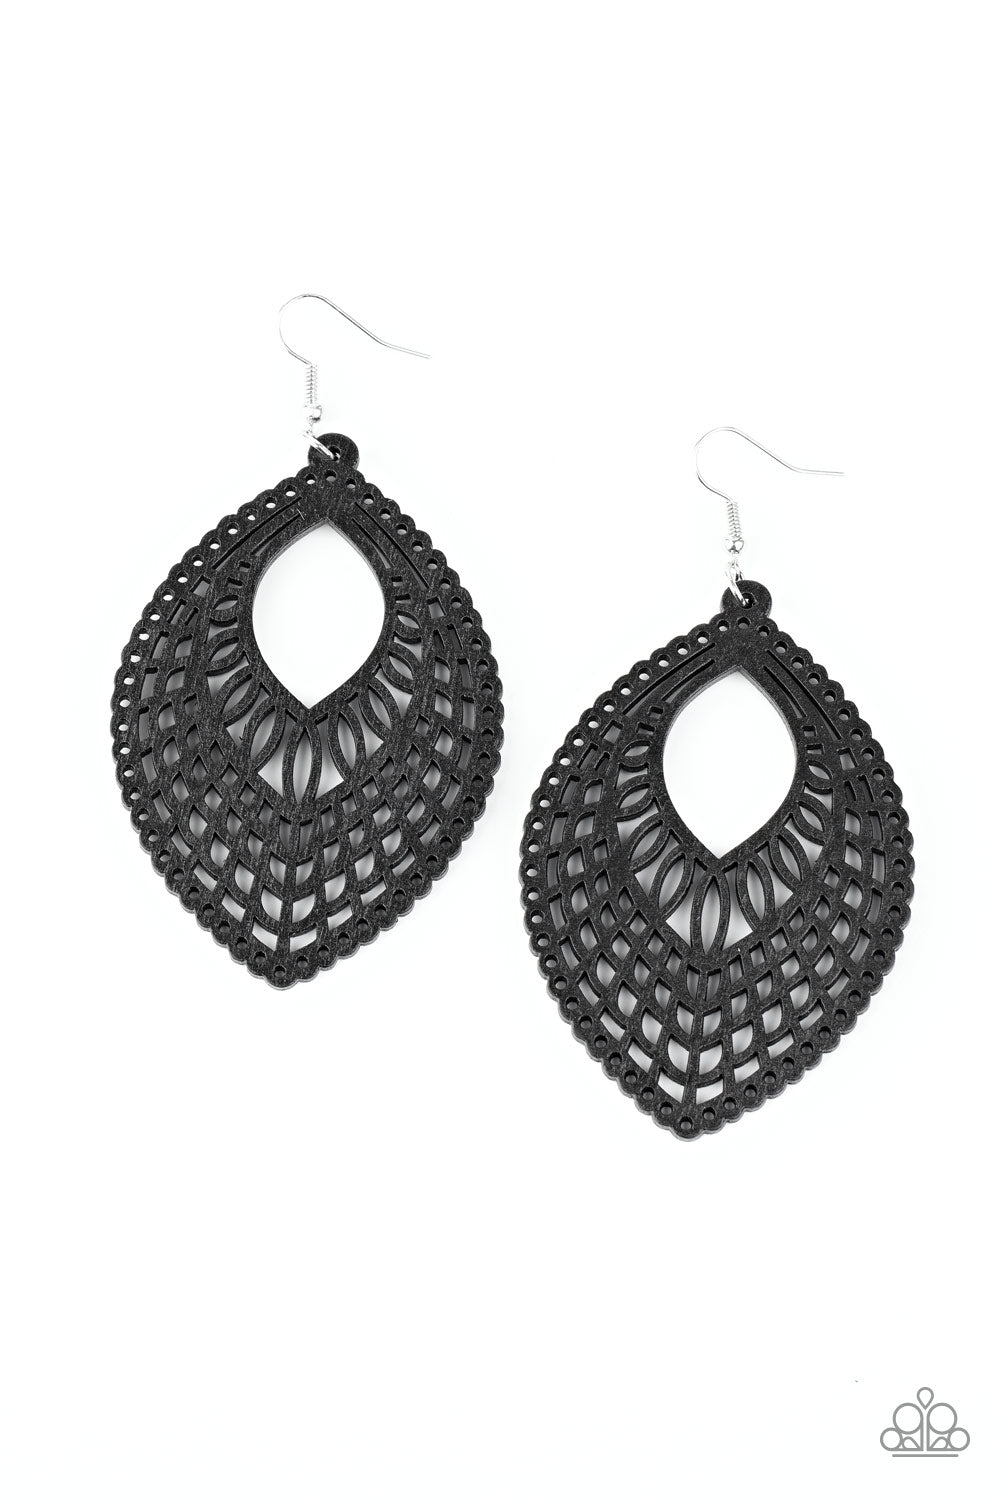 five-dollar-jewelry-one-beach-at-a-time-black-earrings-paparazzi-accessories